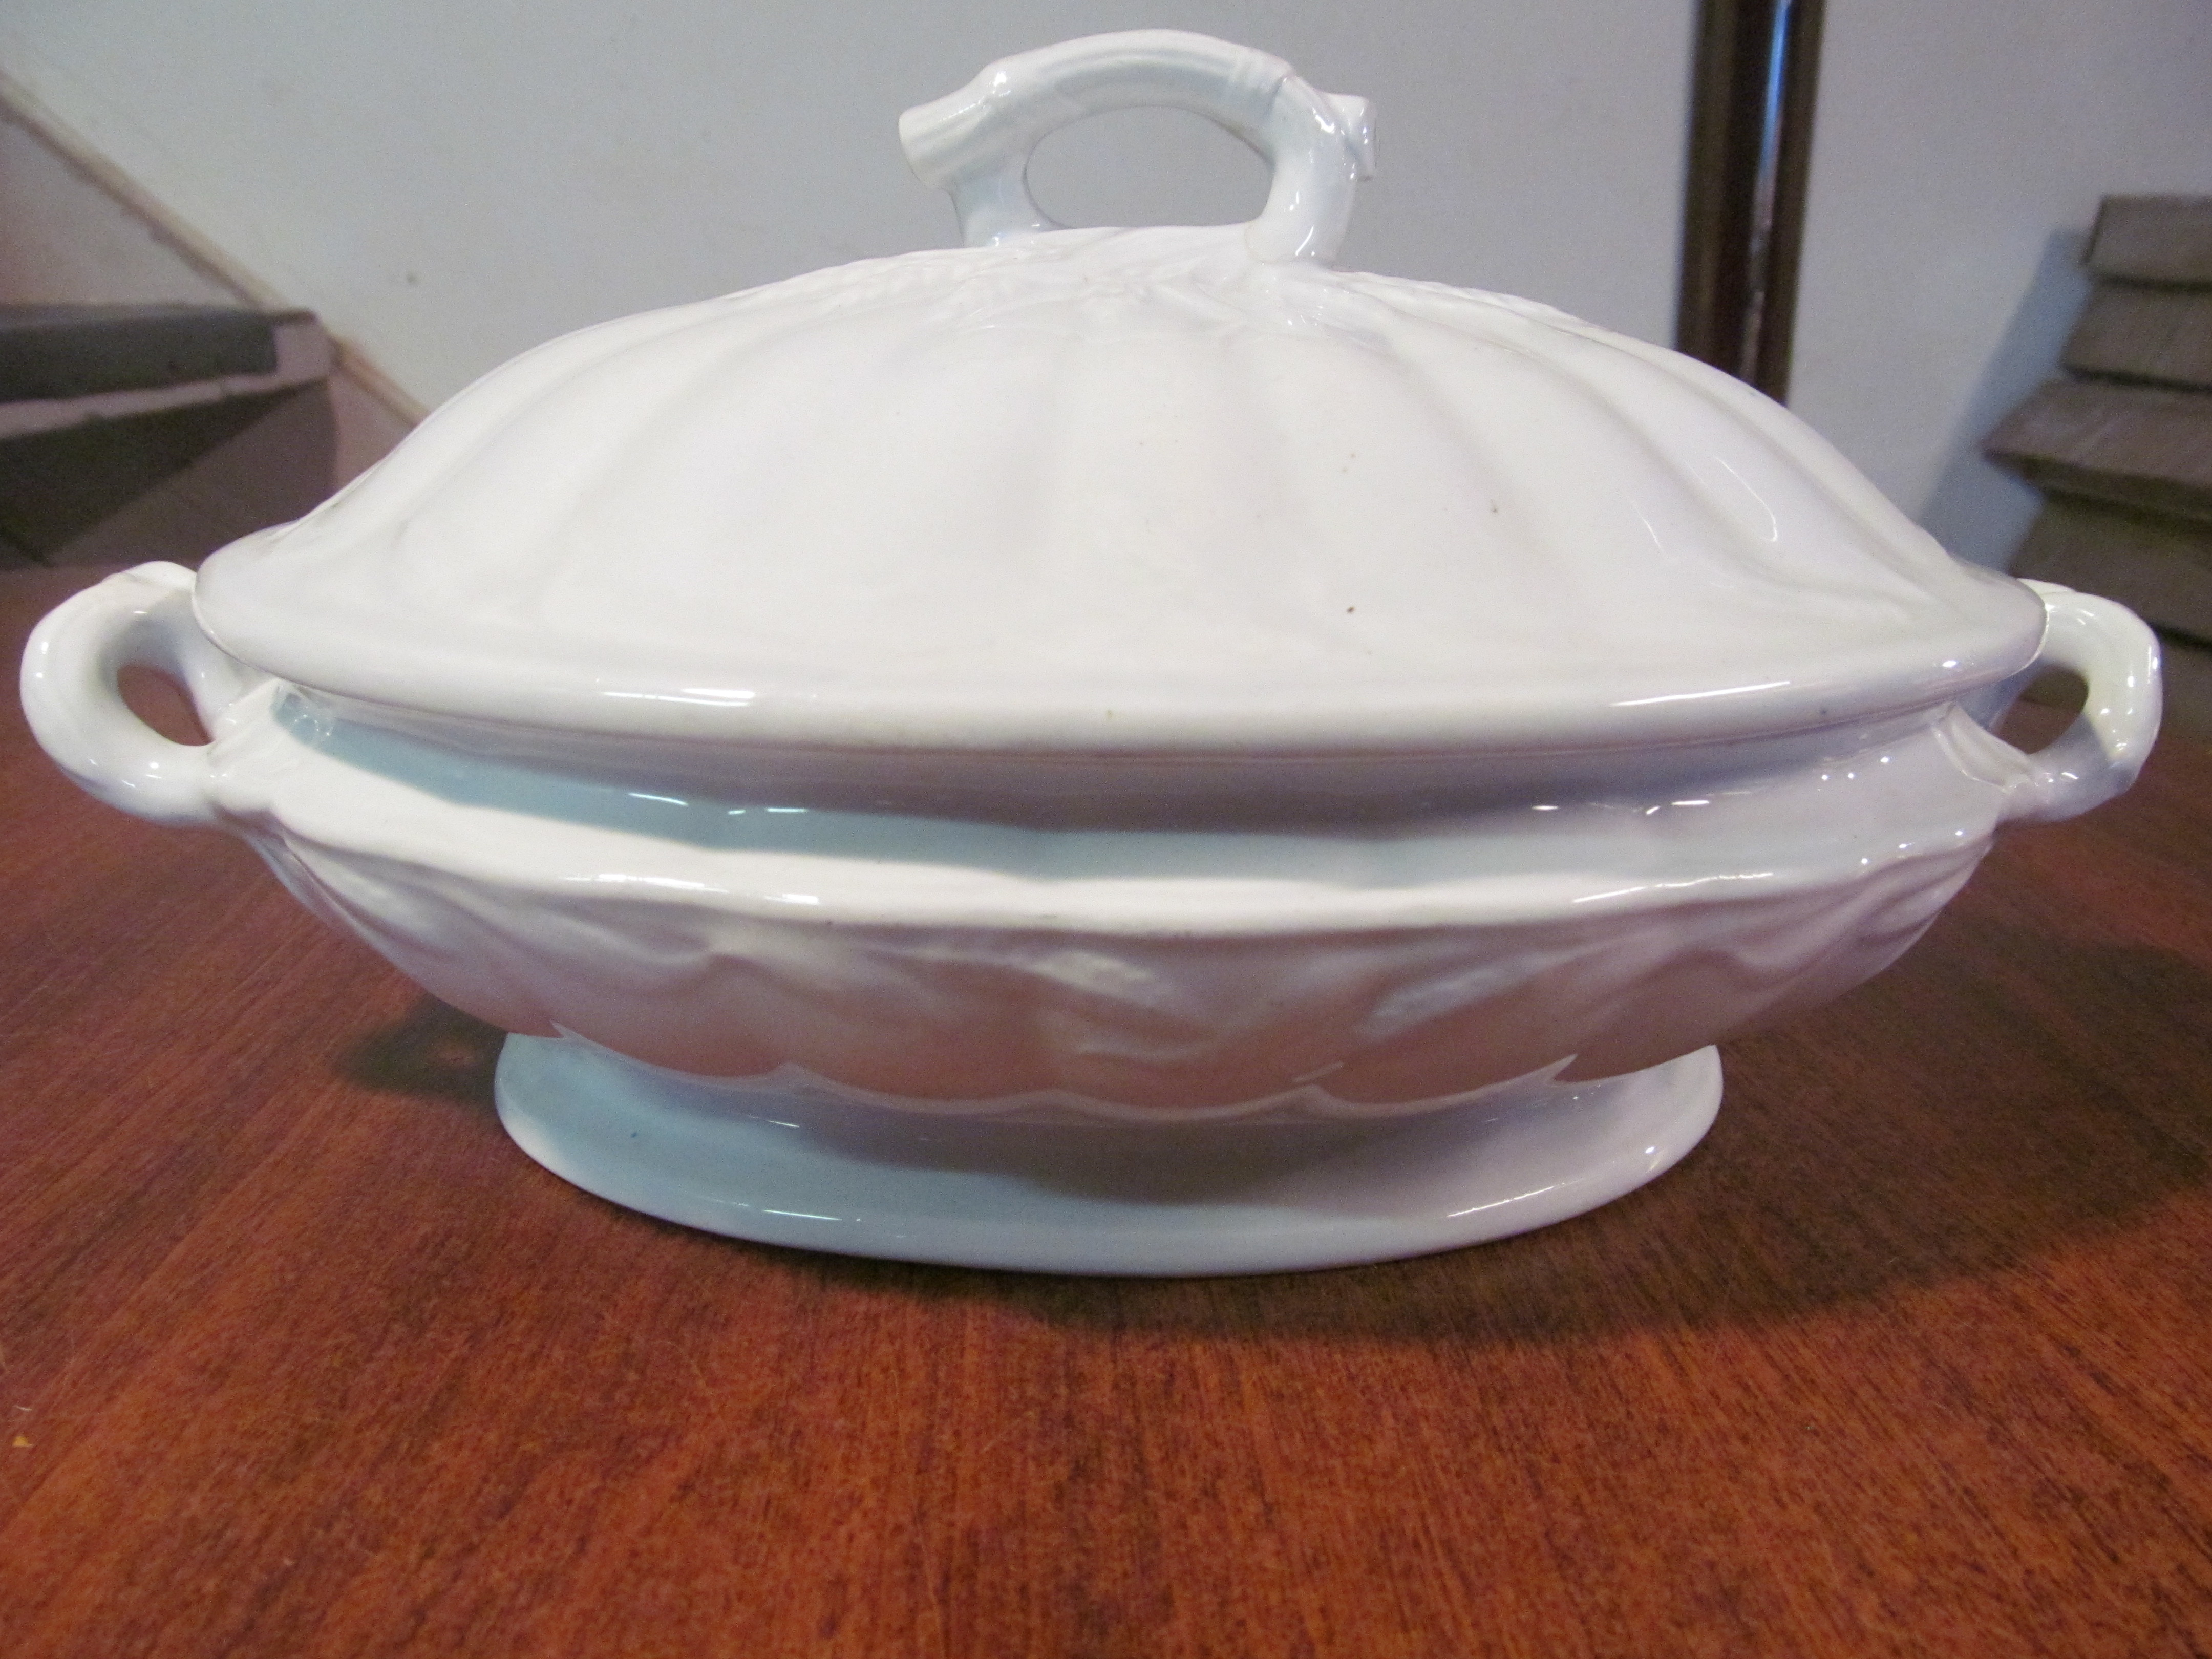 Number 1 Cochran >> R. Cochran & Co. Imperial Ironstone China Covered Vegetable Dish - Scotland